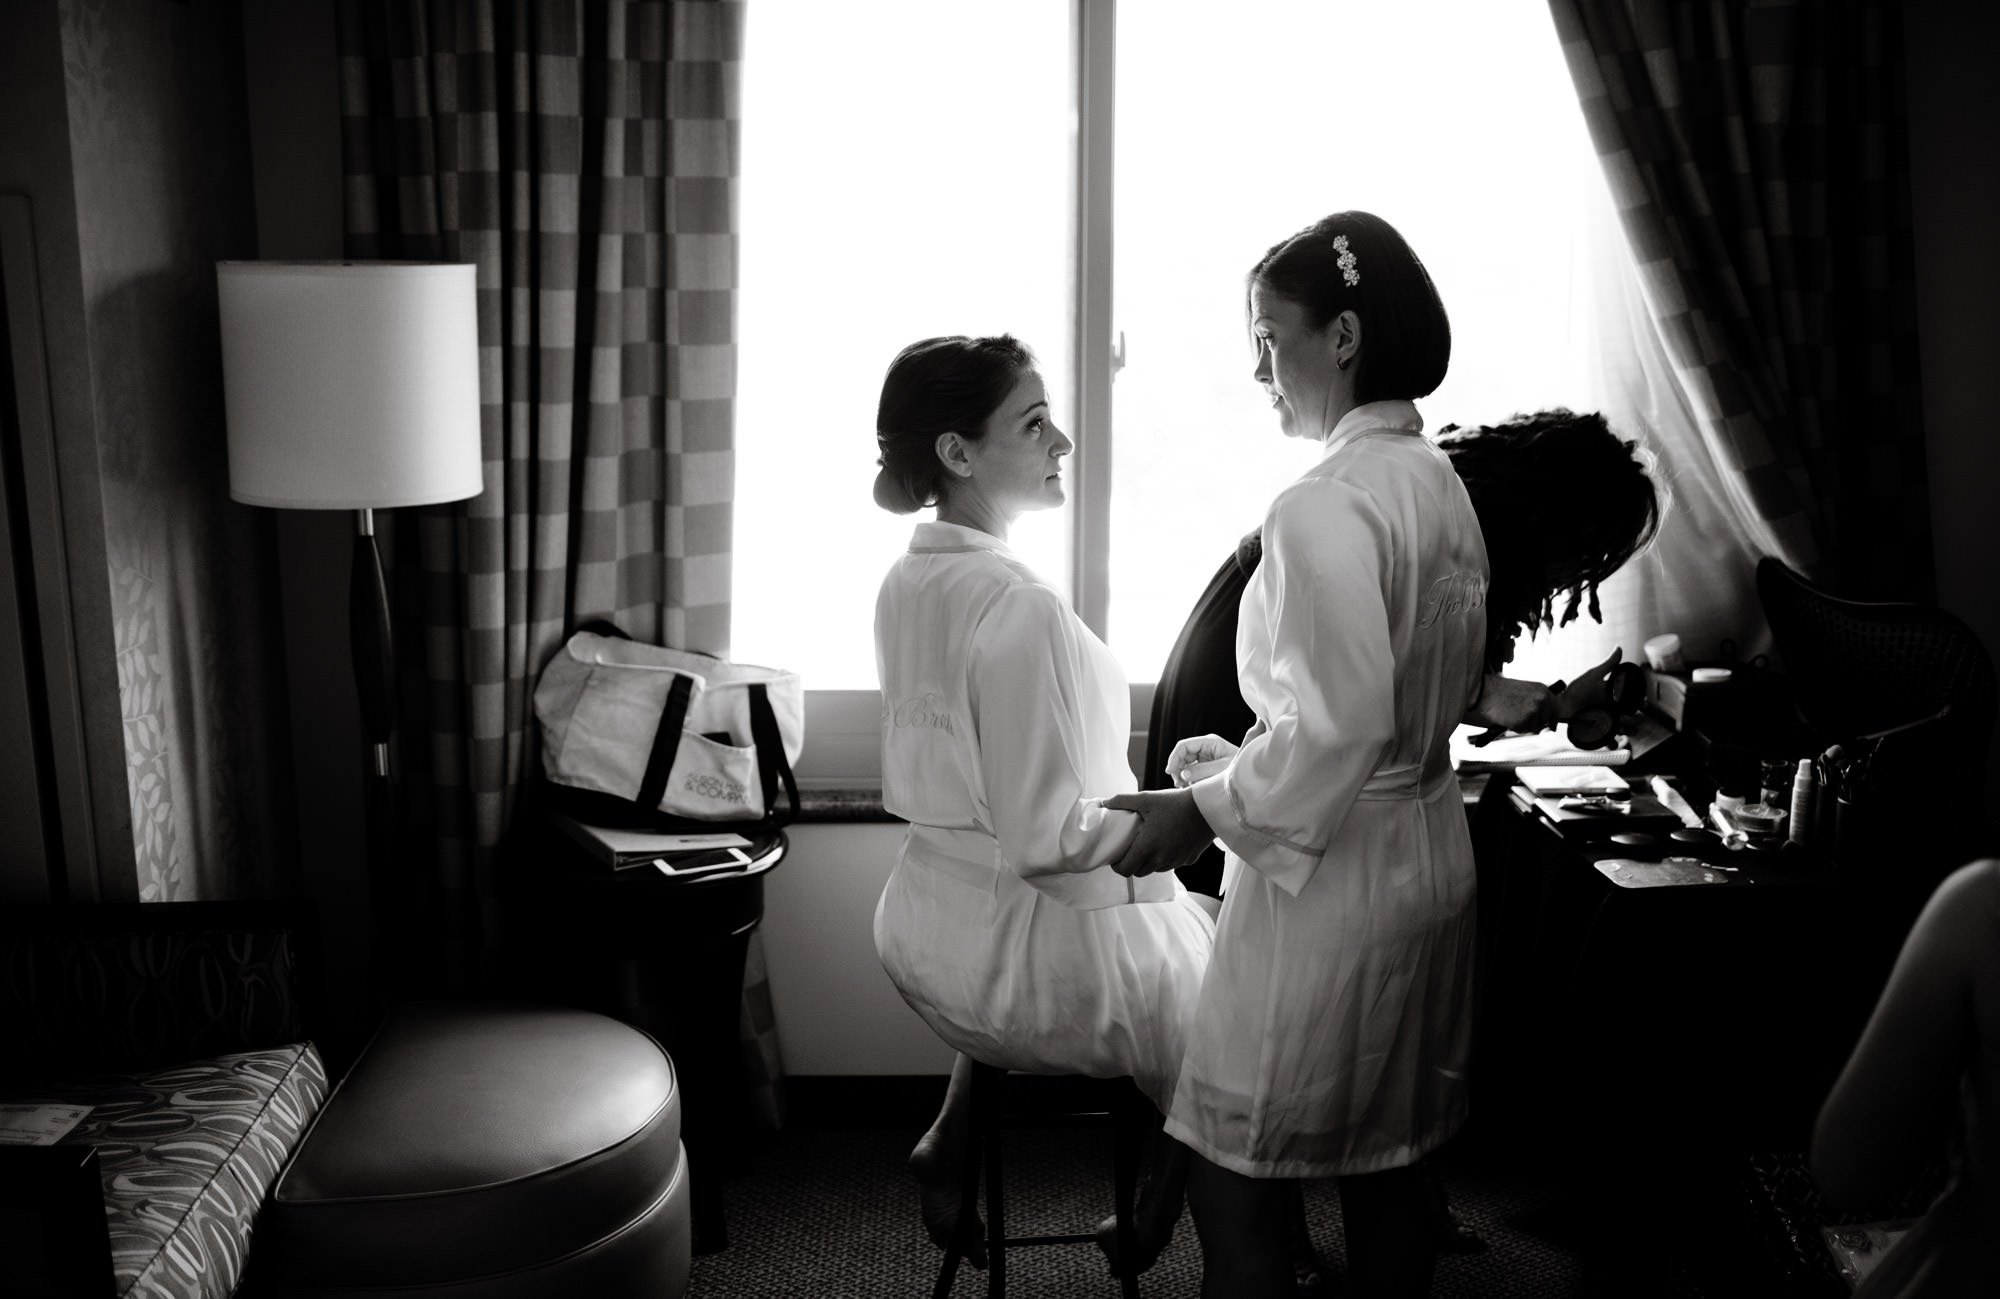 The brides get ready in their hotel room.